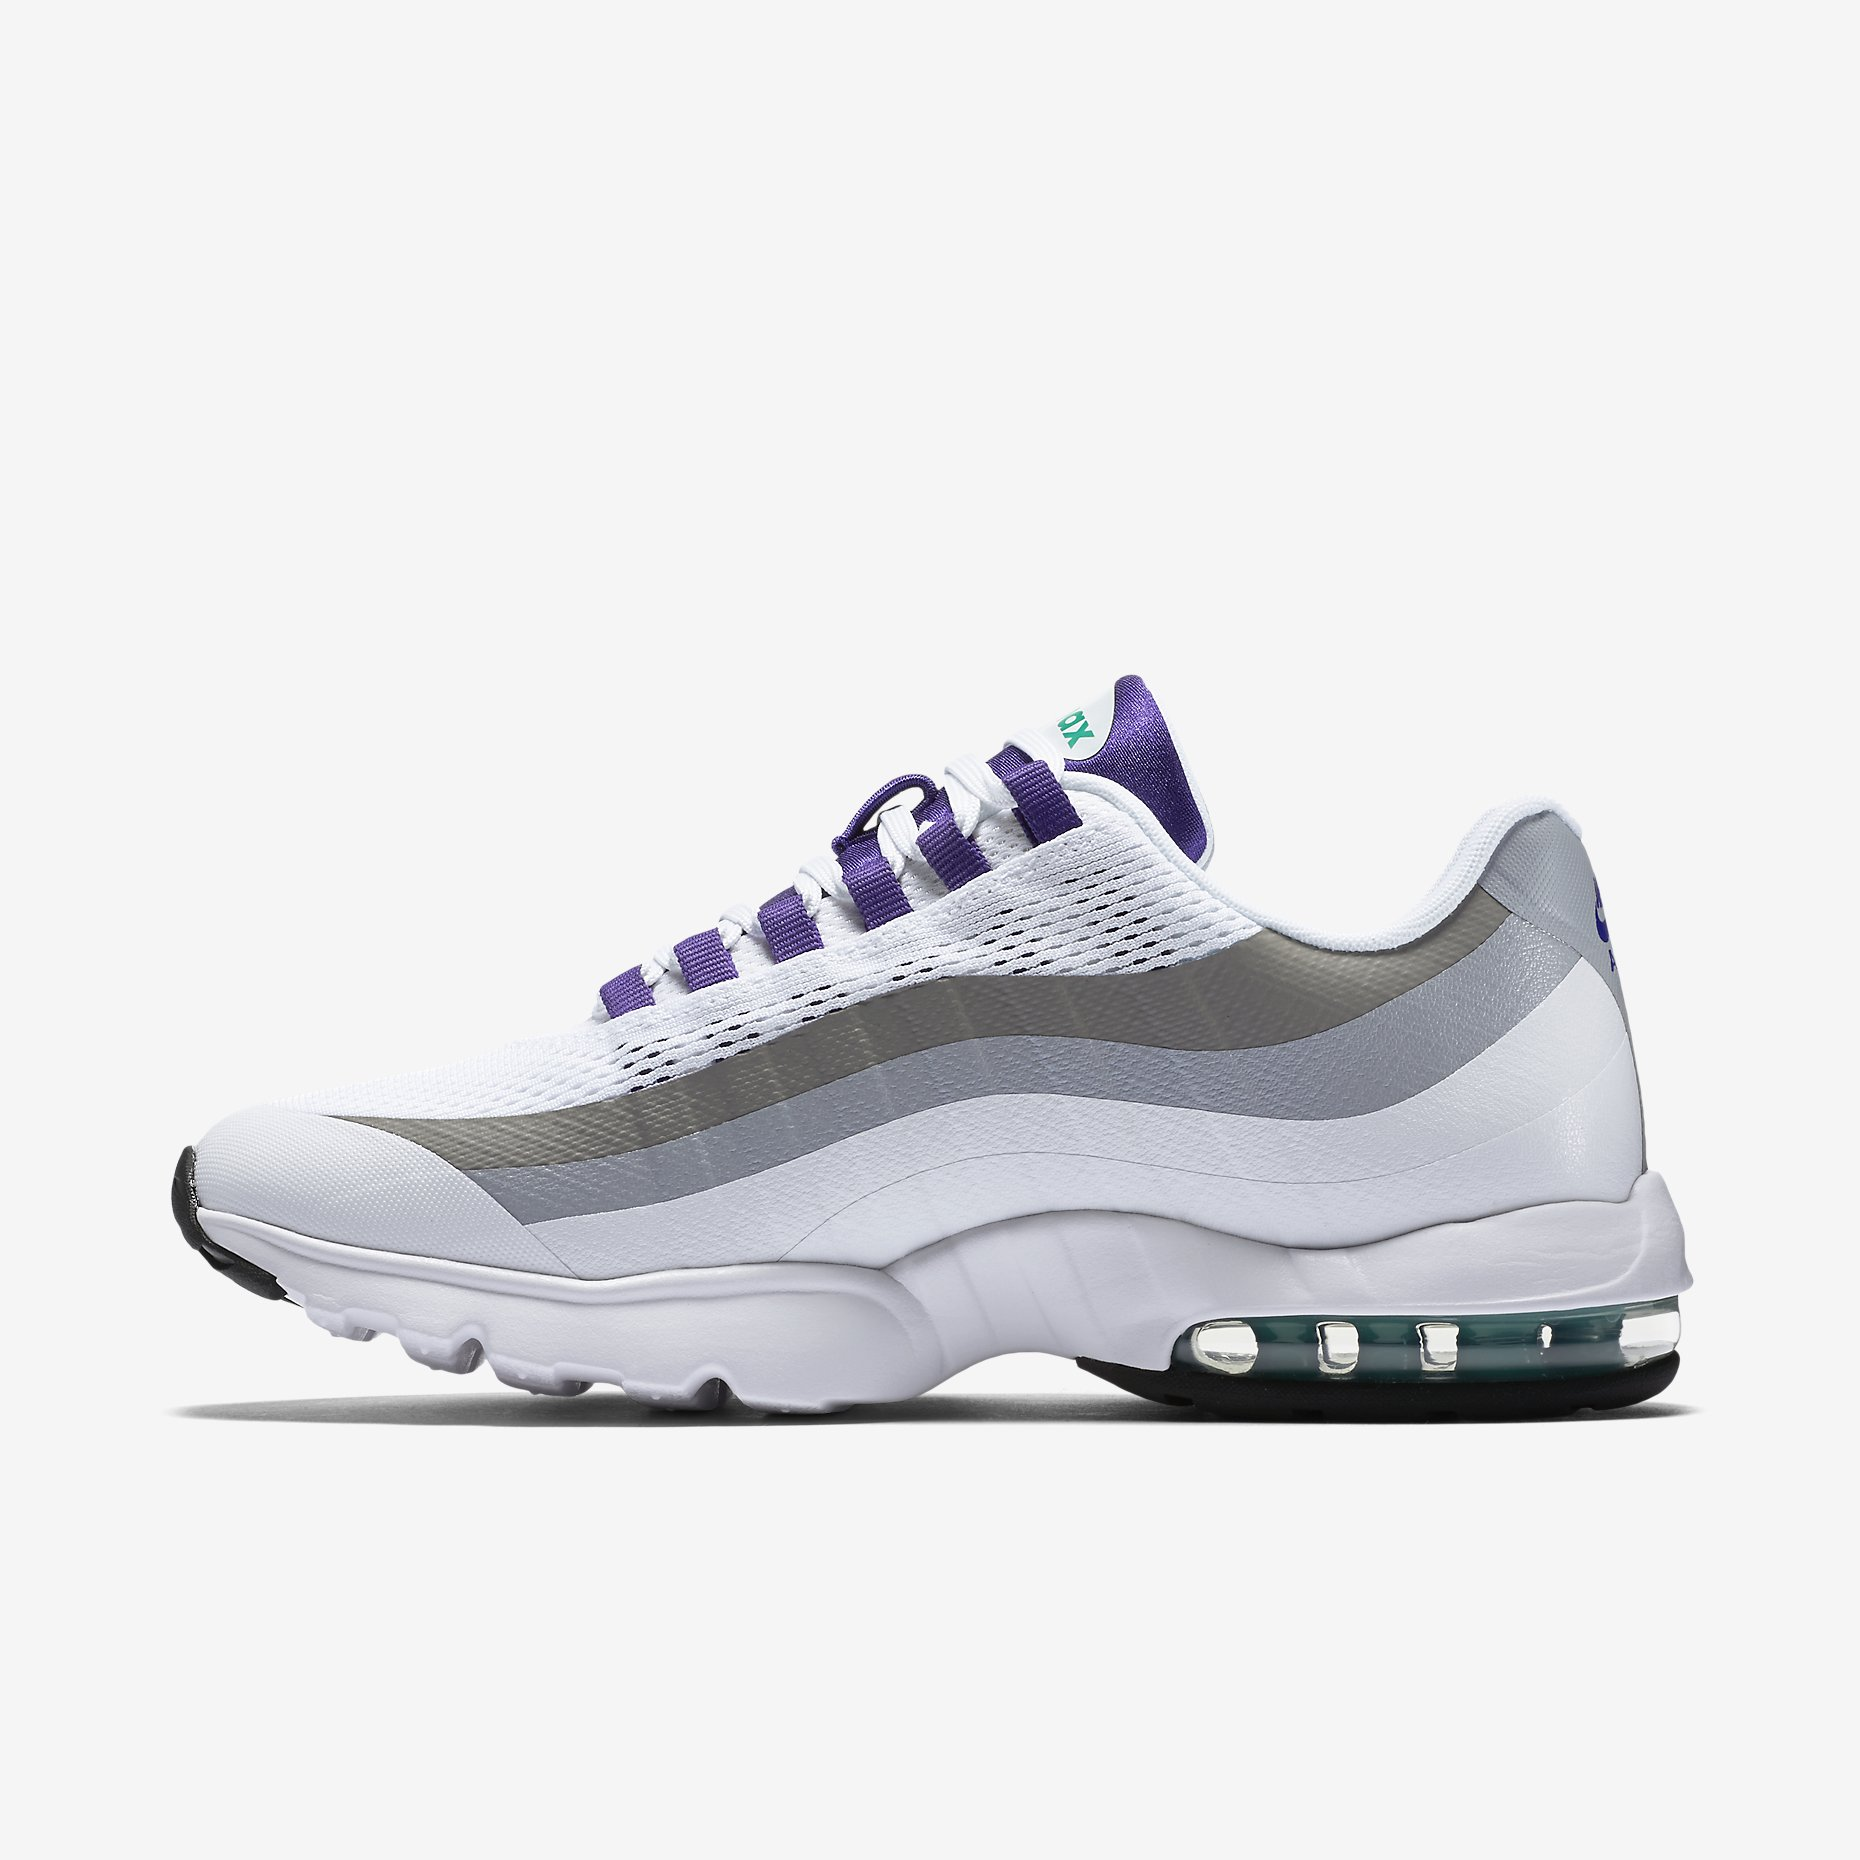 Nike Air Max 95 Ultra WMNS Grape WAVE